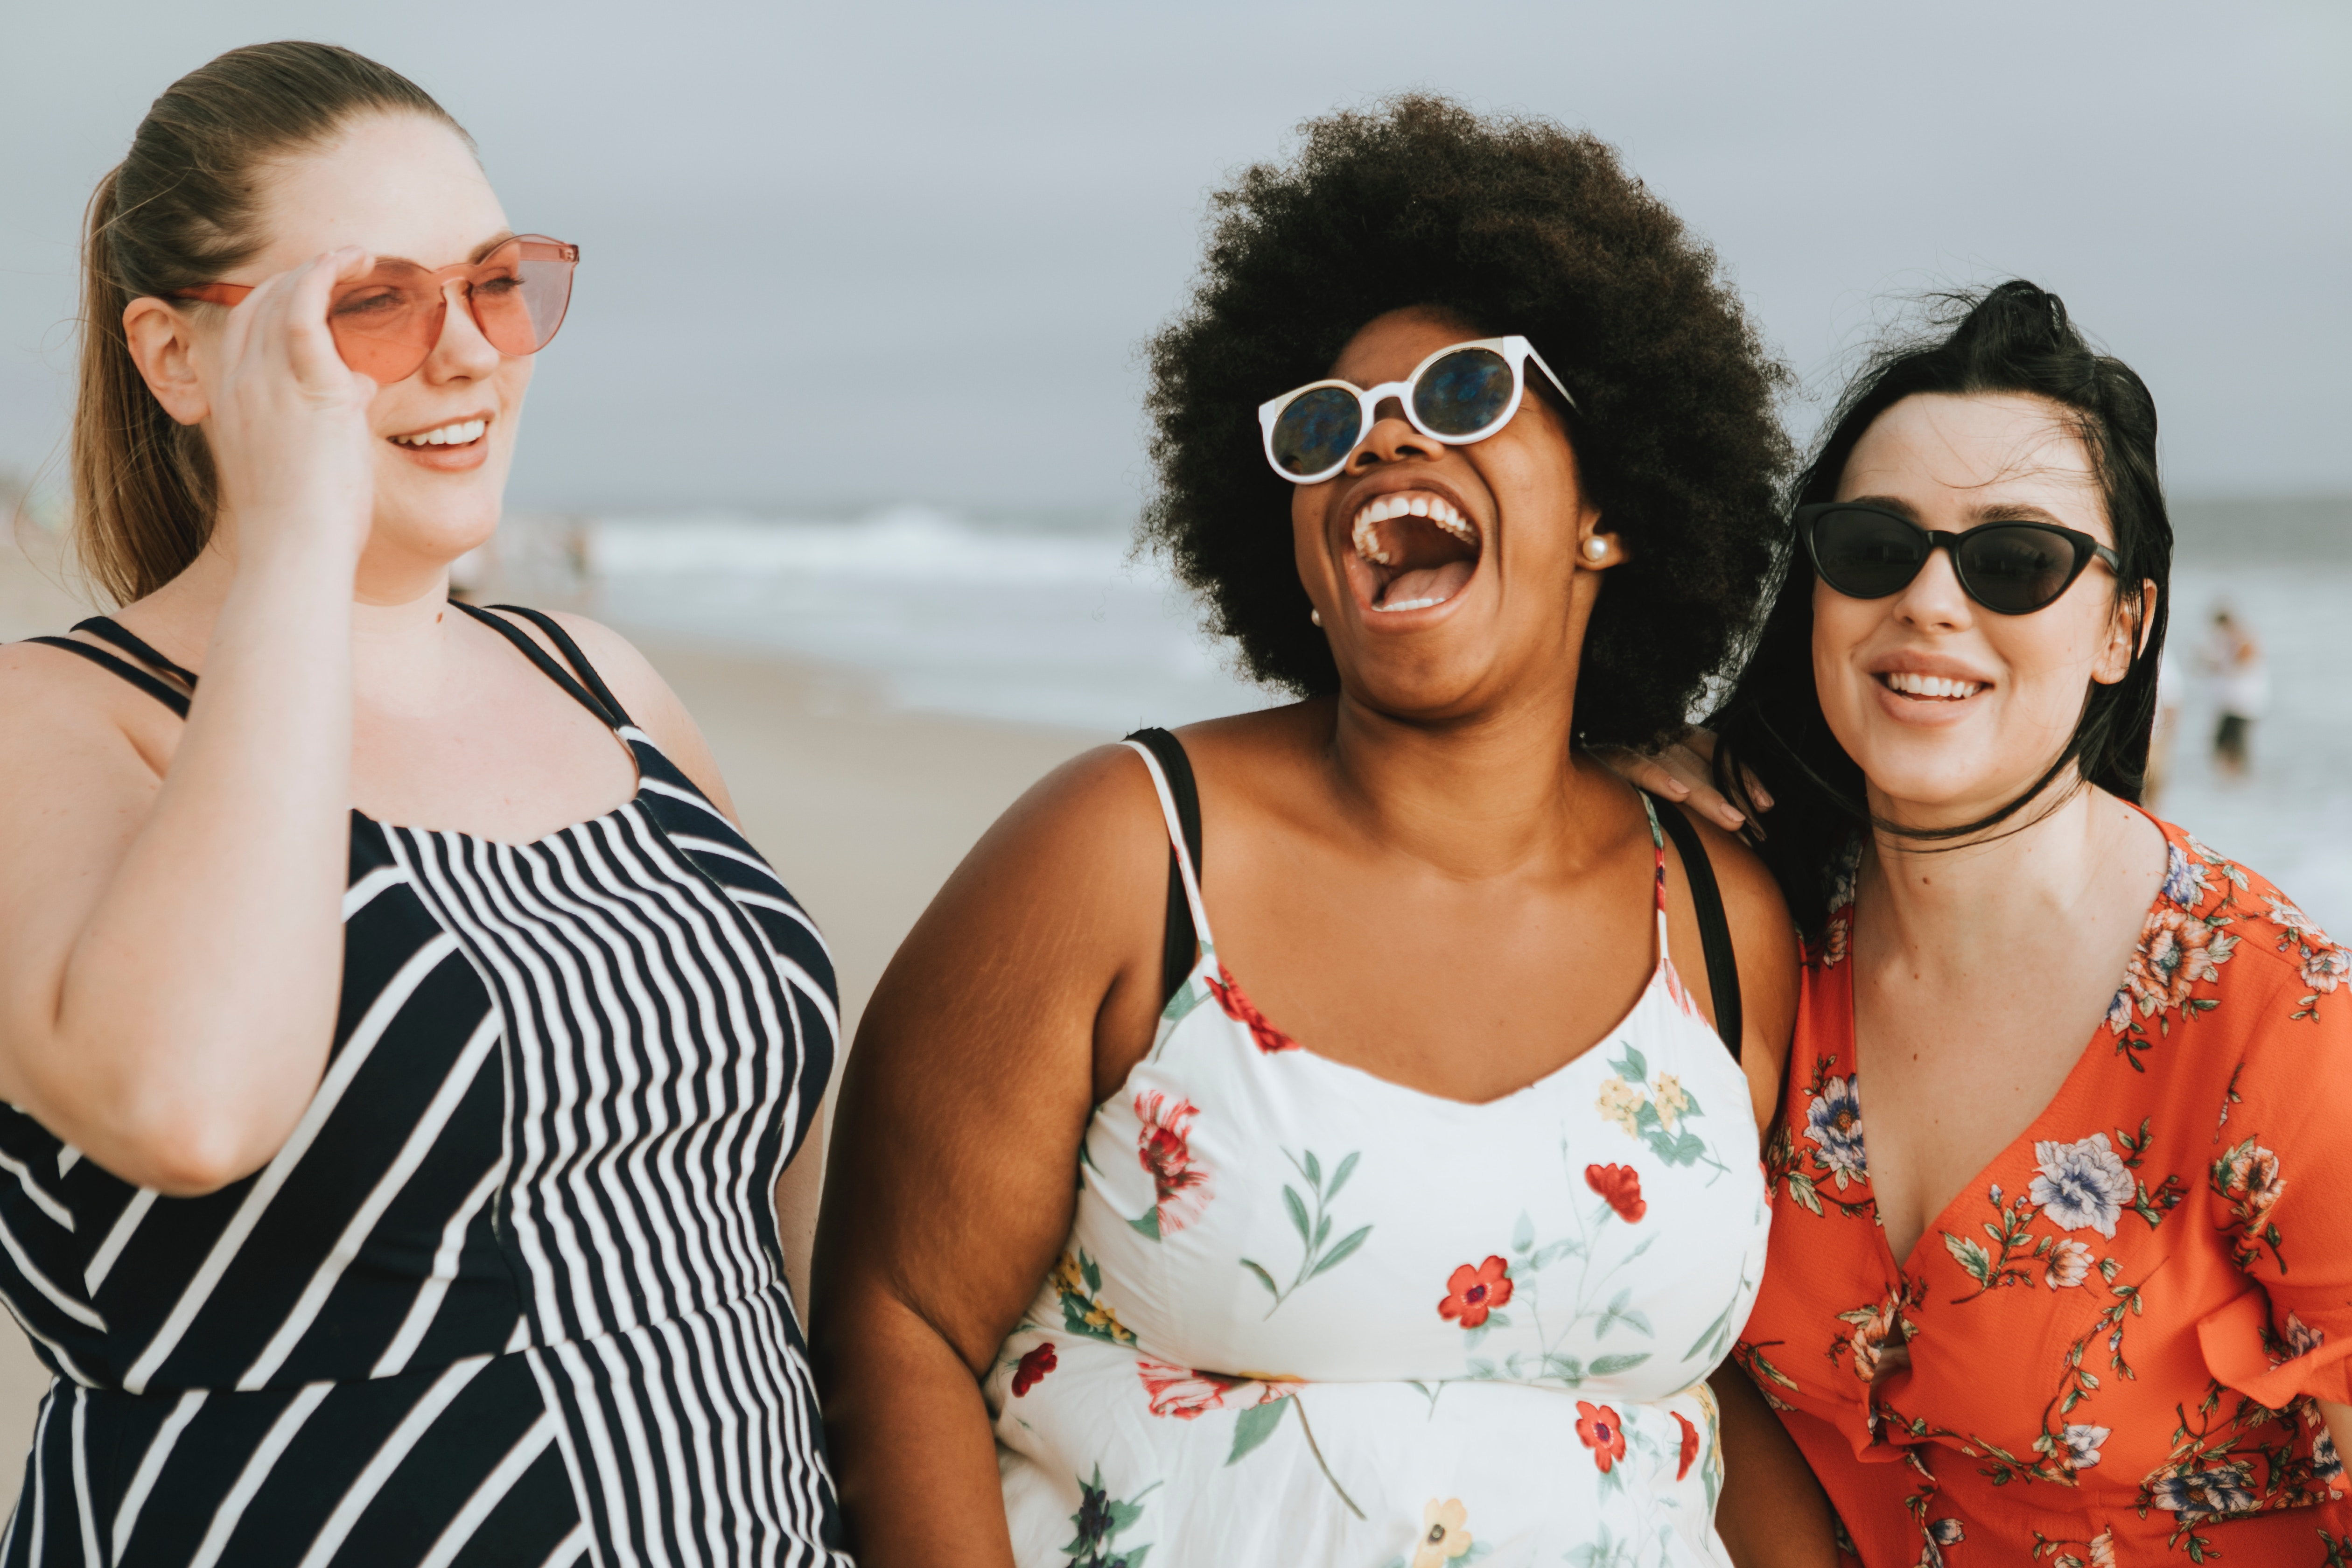 A new era!: The startups promoting body positivity